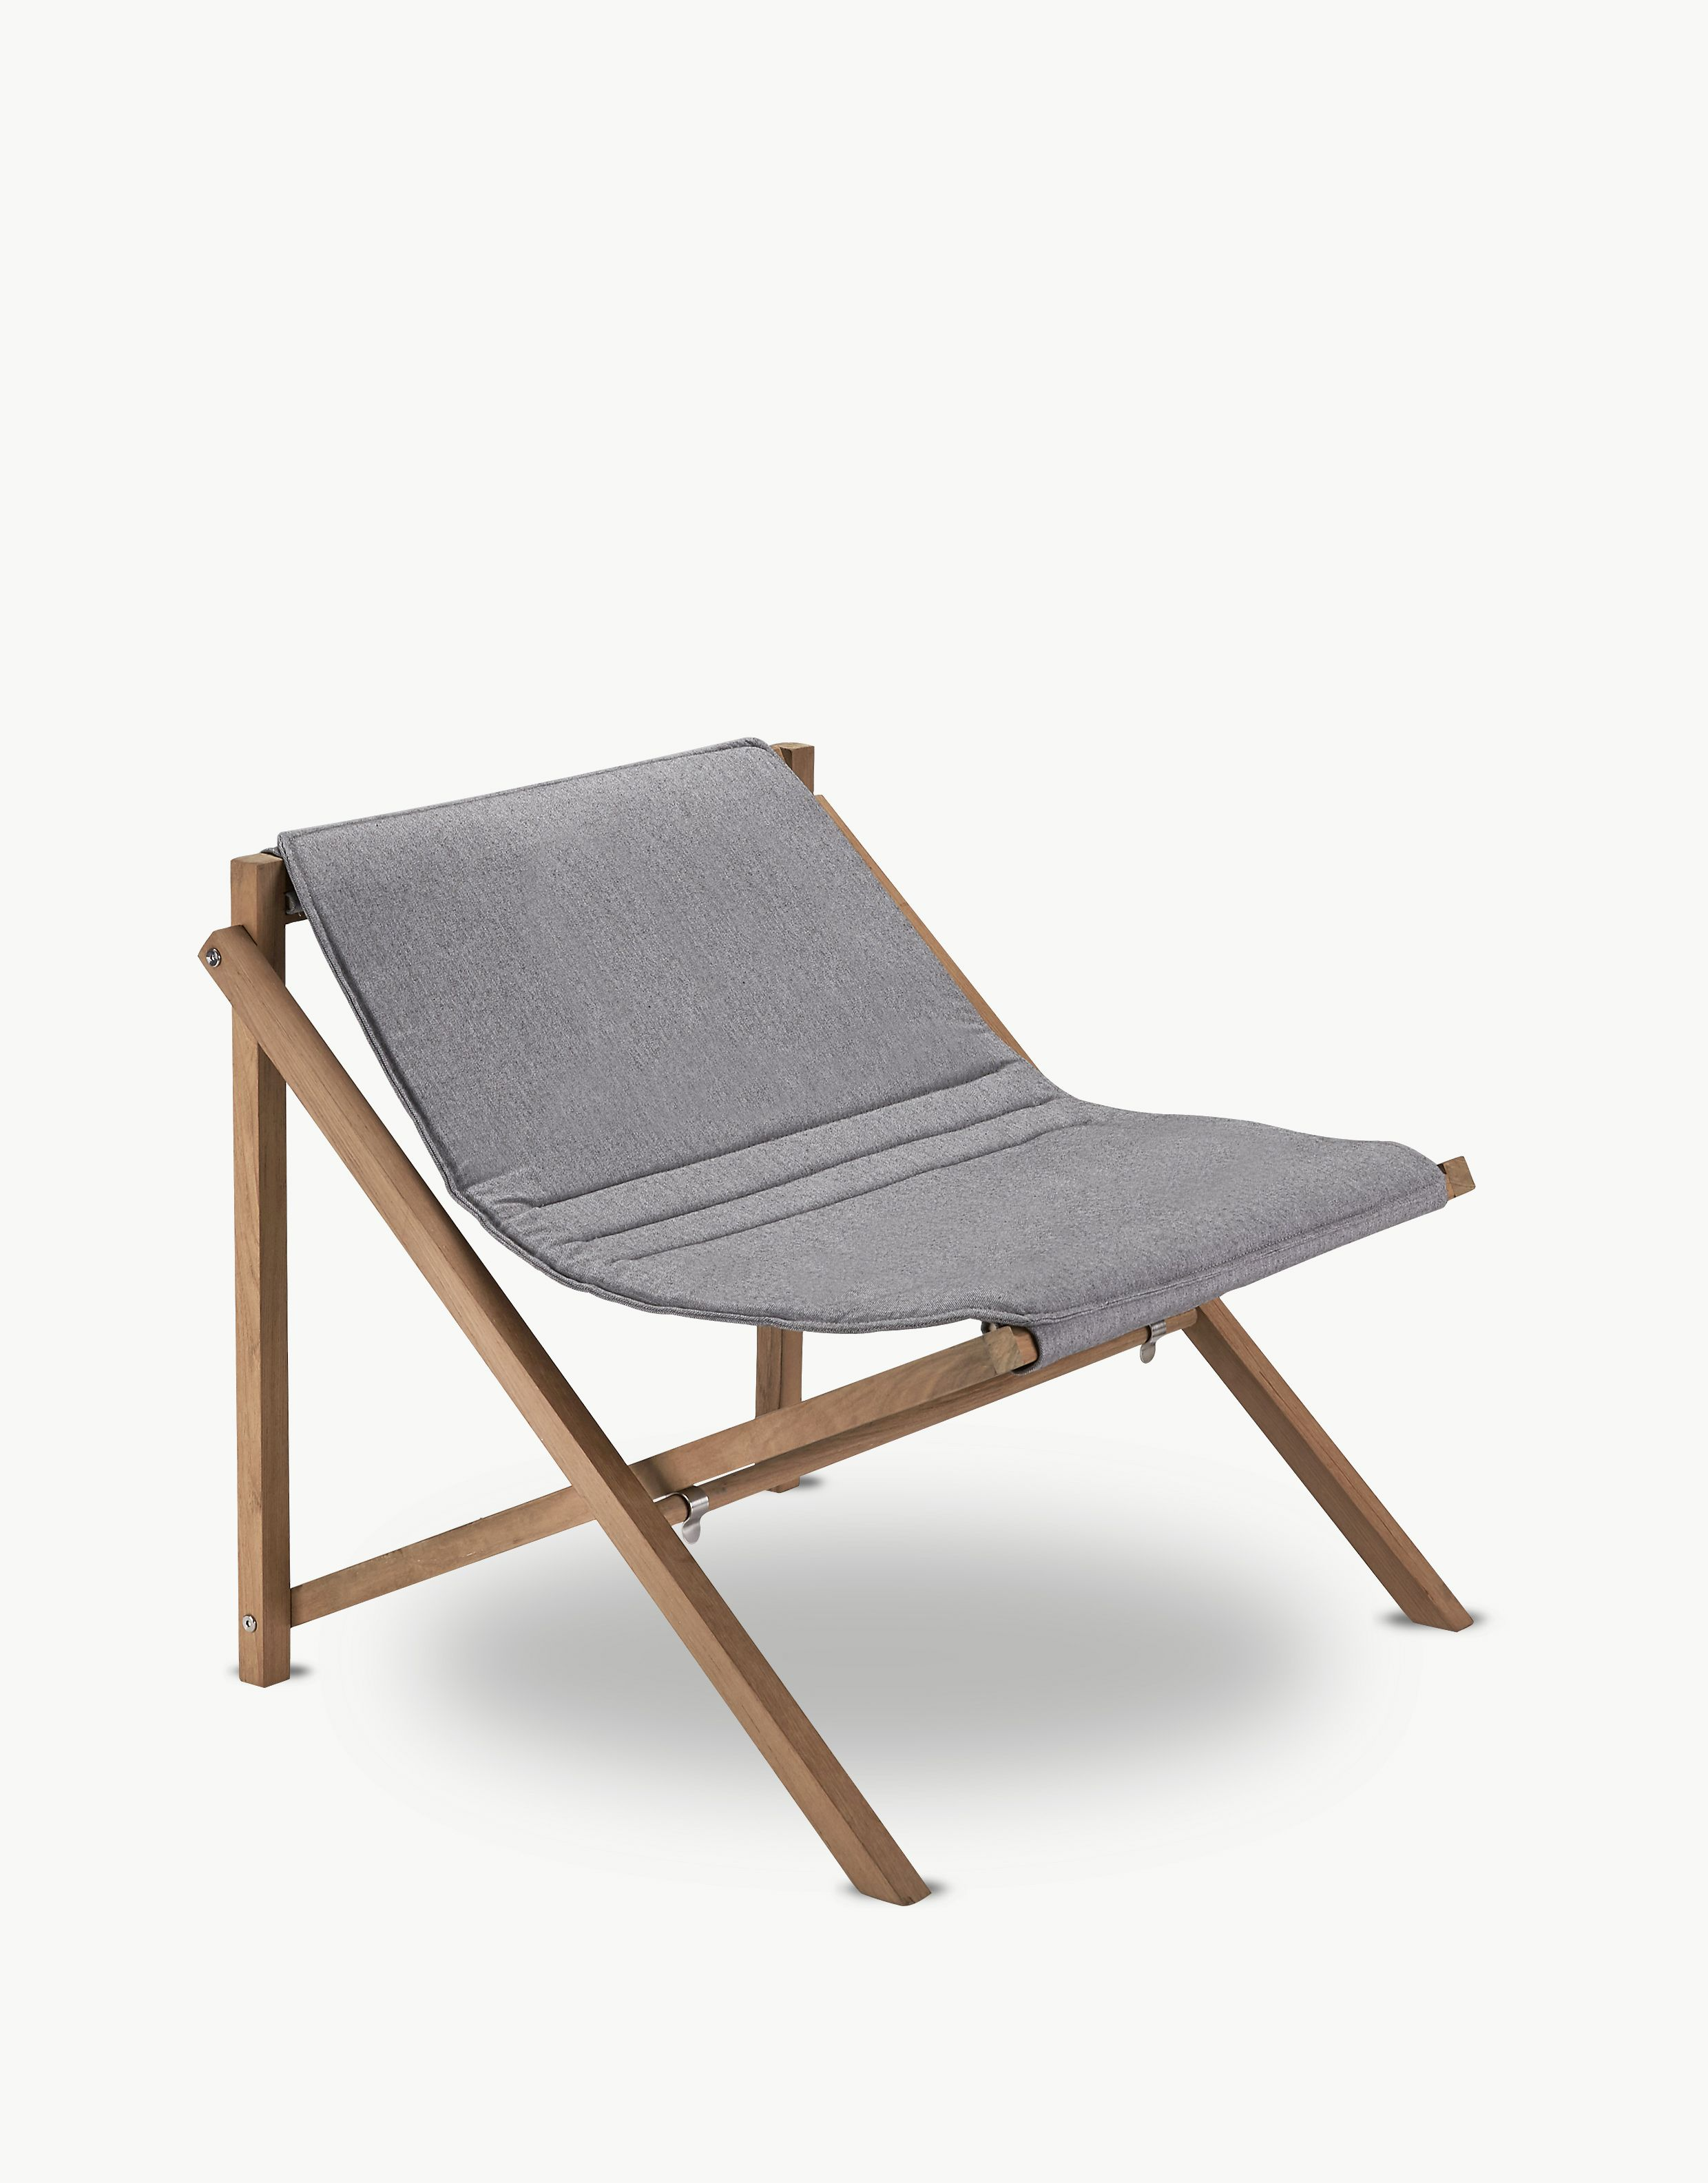 Aito Lounge Chair Skagerak By Designed By Elisa Honkanen With Images Lounge Chair Outdoor Lounge Chair Design Wooden Outdoor Furniture